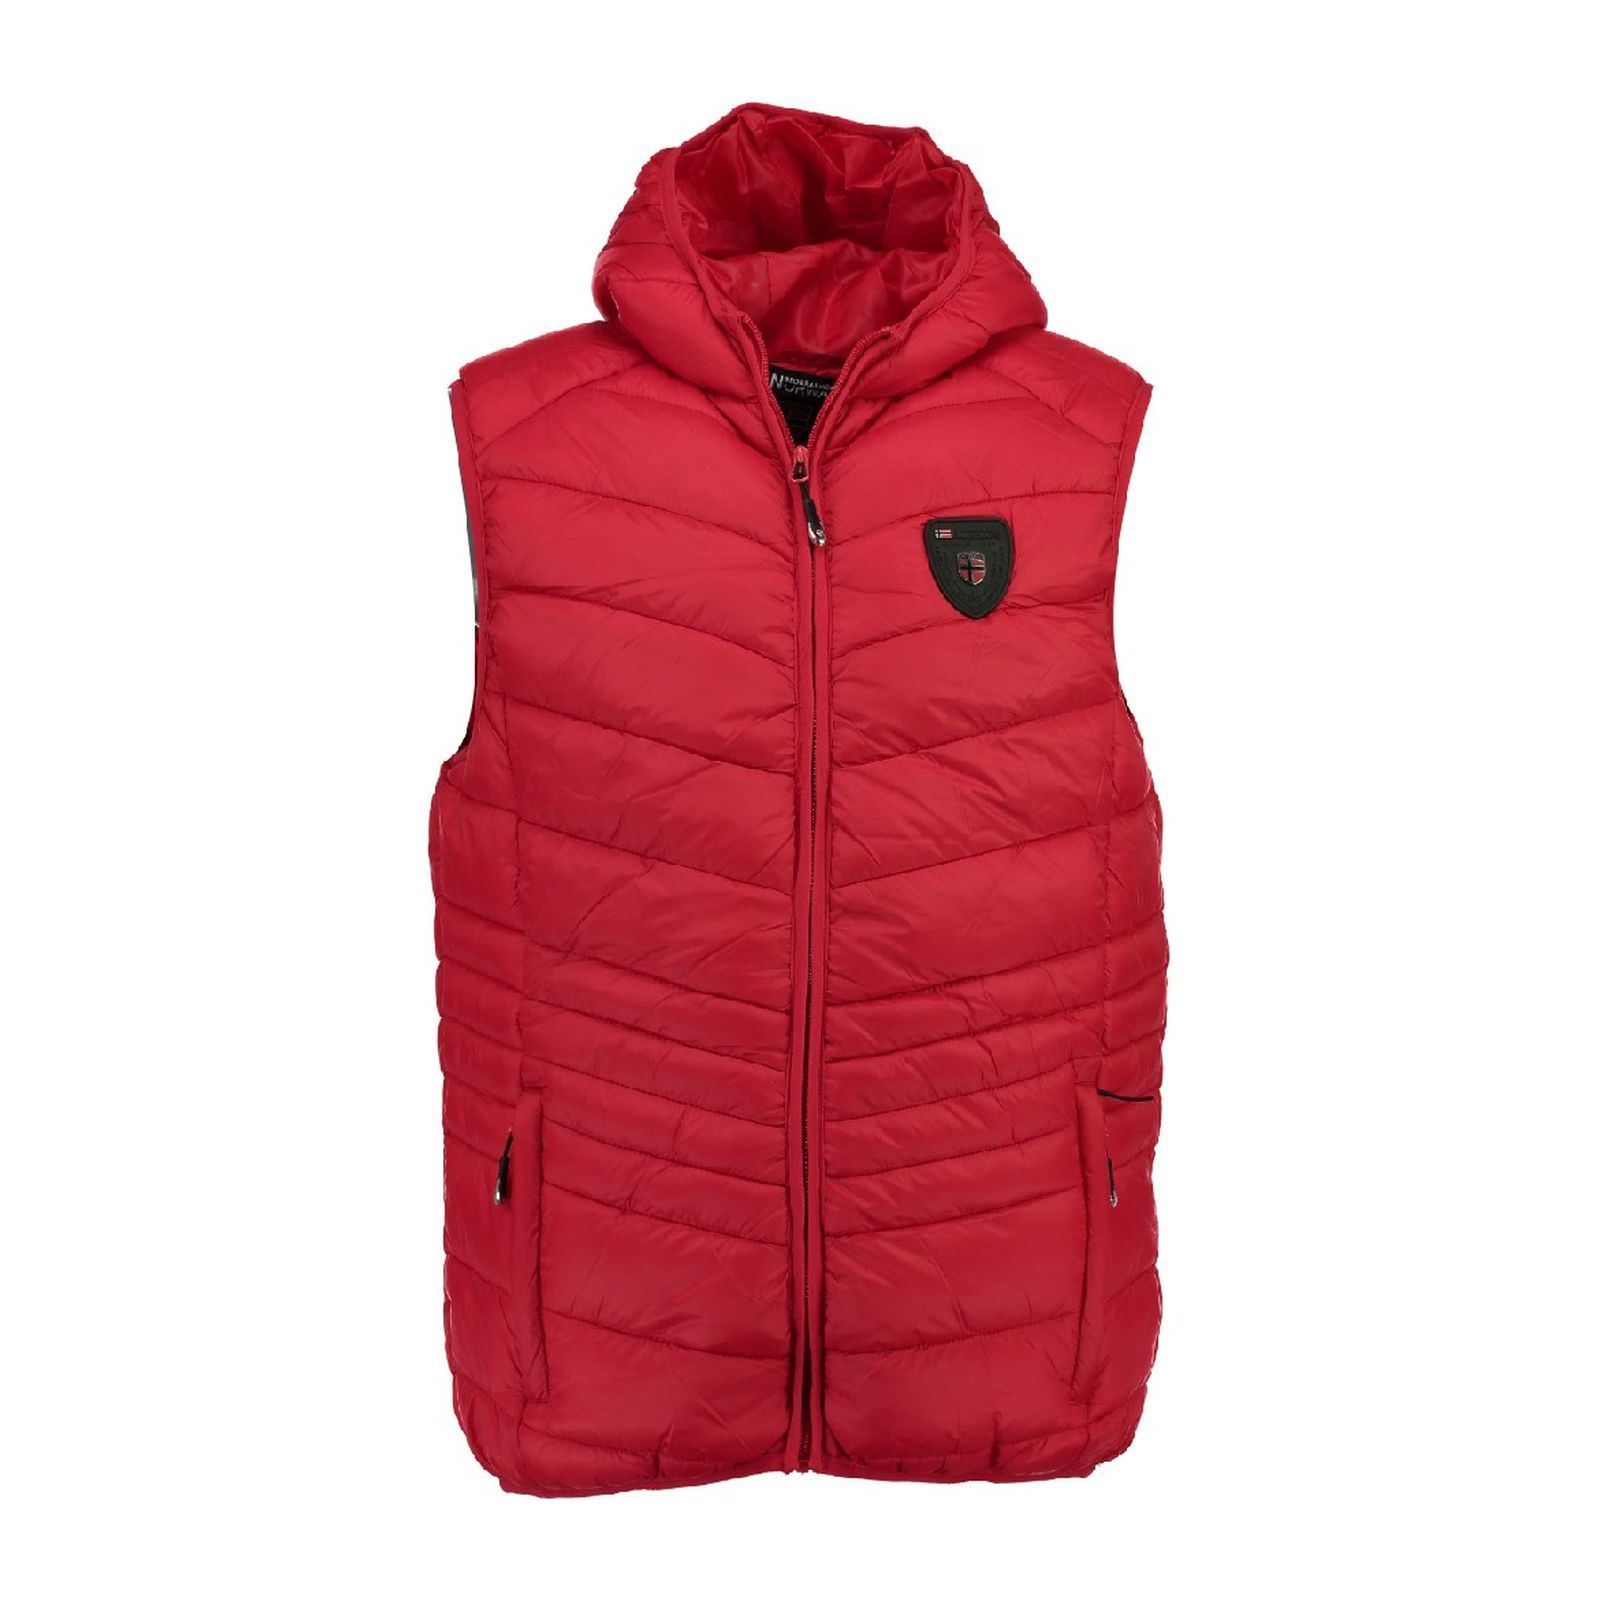 Geographical Norway Piumino - rosso  0ea81772089